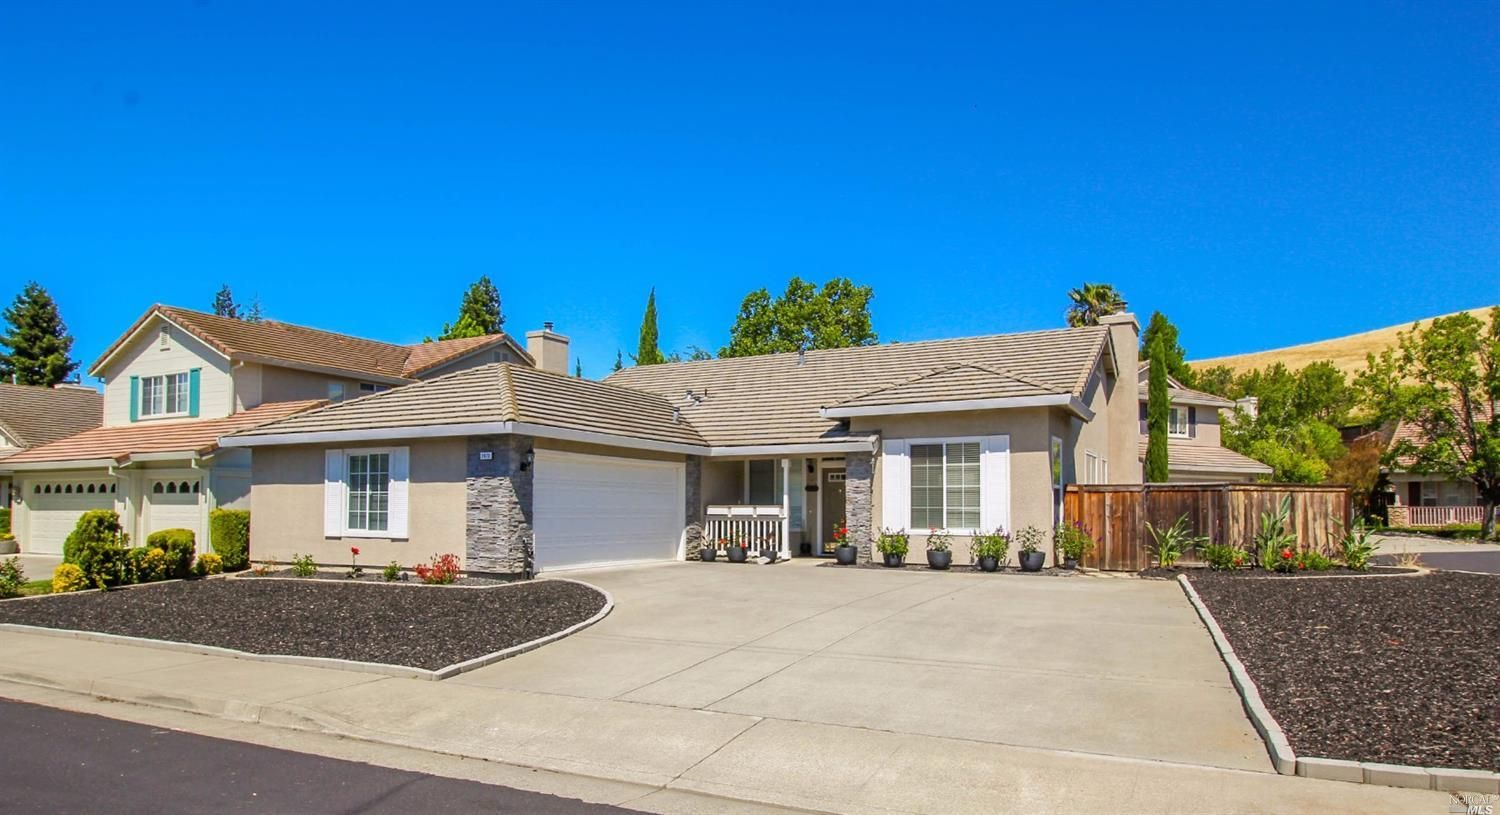 $499000 - Address Not Disclosed Fairfield CA 94534 Popular floor plan and highly sought after single story in the gated community of Castle Rock.  Vaulted taller ceilings & laminate flooring throughout.  Additional large walk-in closet 65 X 56 spacious kitchen opens to family room w/fireplace. Living room opens to formal dining area. 3 bedrooms  2 full bathrooms 1910 sq ft located on a corner lot 7427 sq ft. Very low maintenance landscaping extra extended 2 car garage. http://bit.ly/2mdKc0z